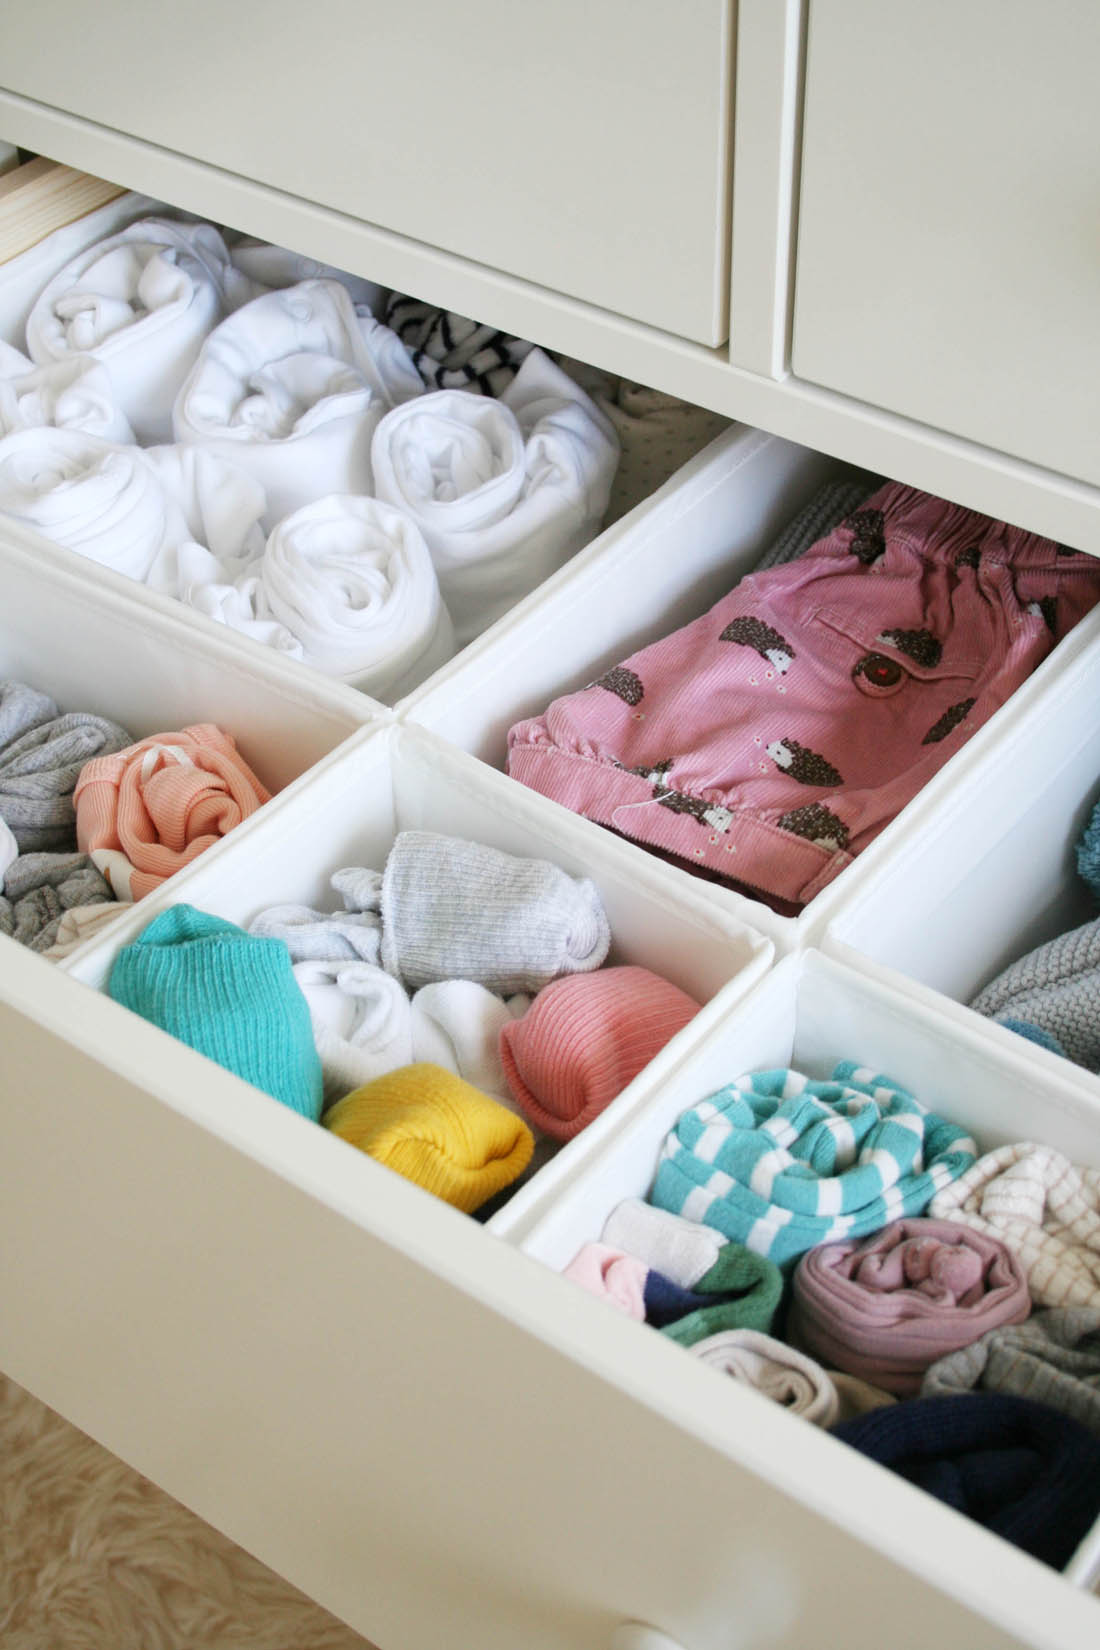 Nursery tour | Hemnes chest of drawers from IKEA | Apartment Apothecary